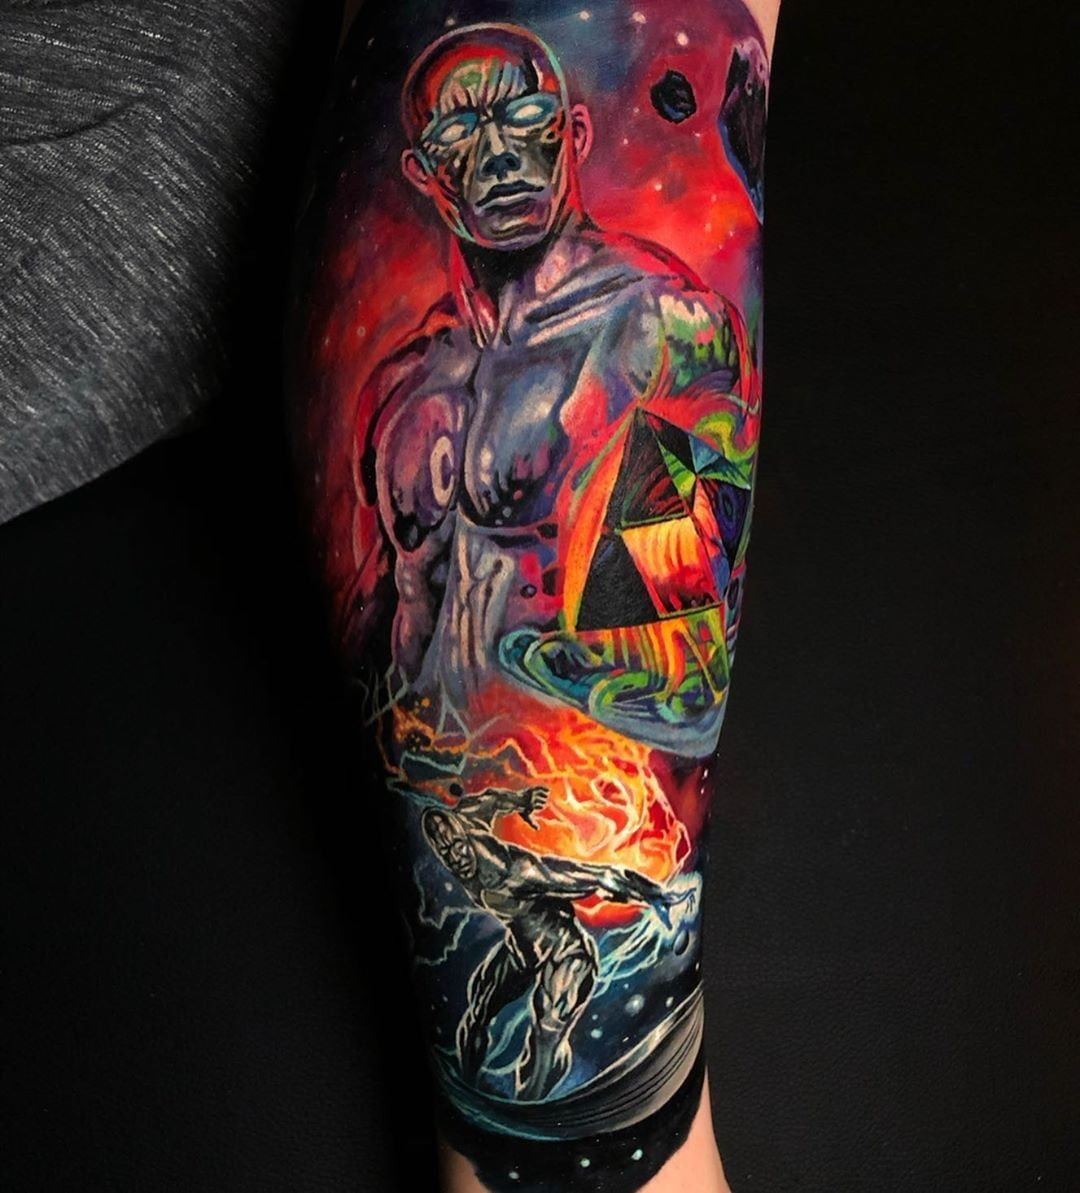 🙏🏻⚡👏 Silver Surfer Artist: @draworking Country: CA ——————————————————————— ⚜️FOLLOW⚜️ @skingiants for daily tattoos! Sharing only the best tattoos Artists on instagram —————————————————————— #realismtattoo #colourtattoo #skingiants #tattooist #tattoolove #tattooed #tattoosleeve #tattoodesign #tattoolover #tattooworld #tattoosofinstagram #tattoolovers #tattooleg #inked #tat #tats